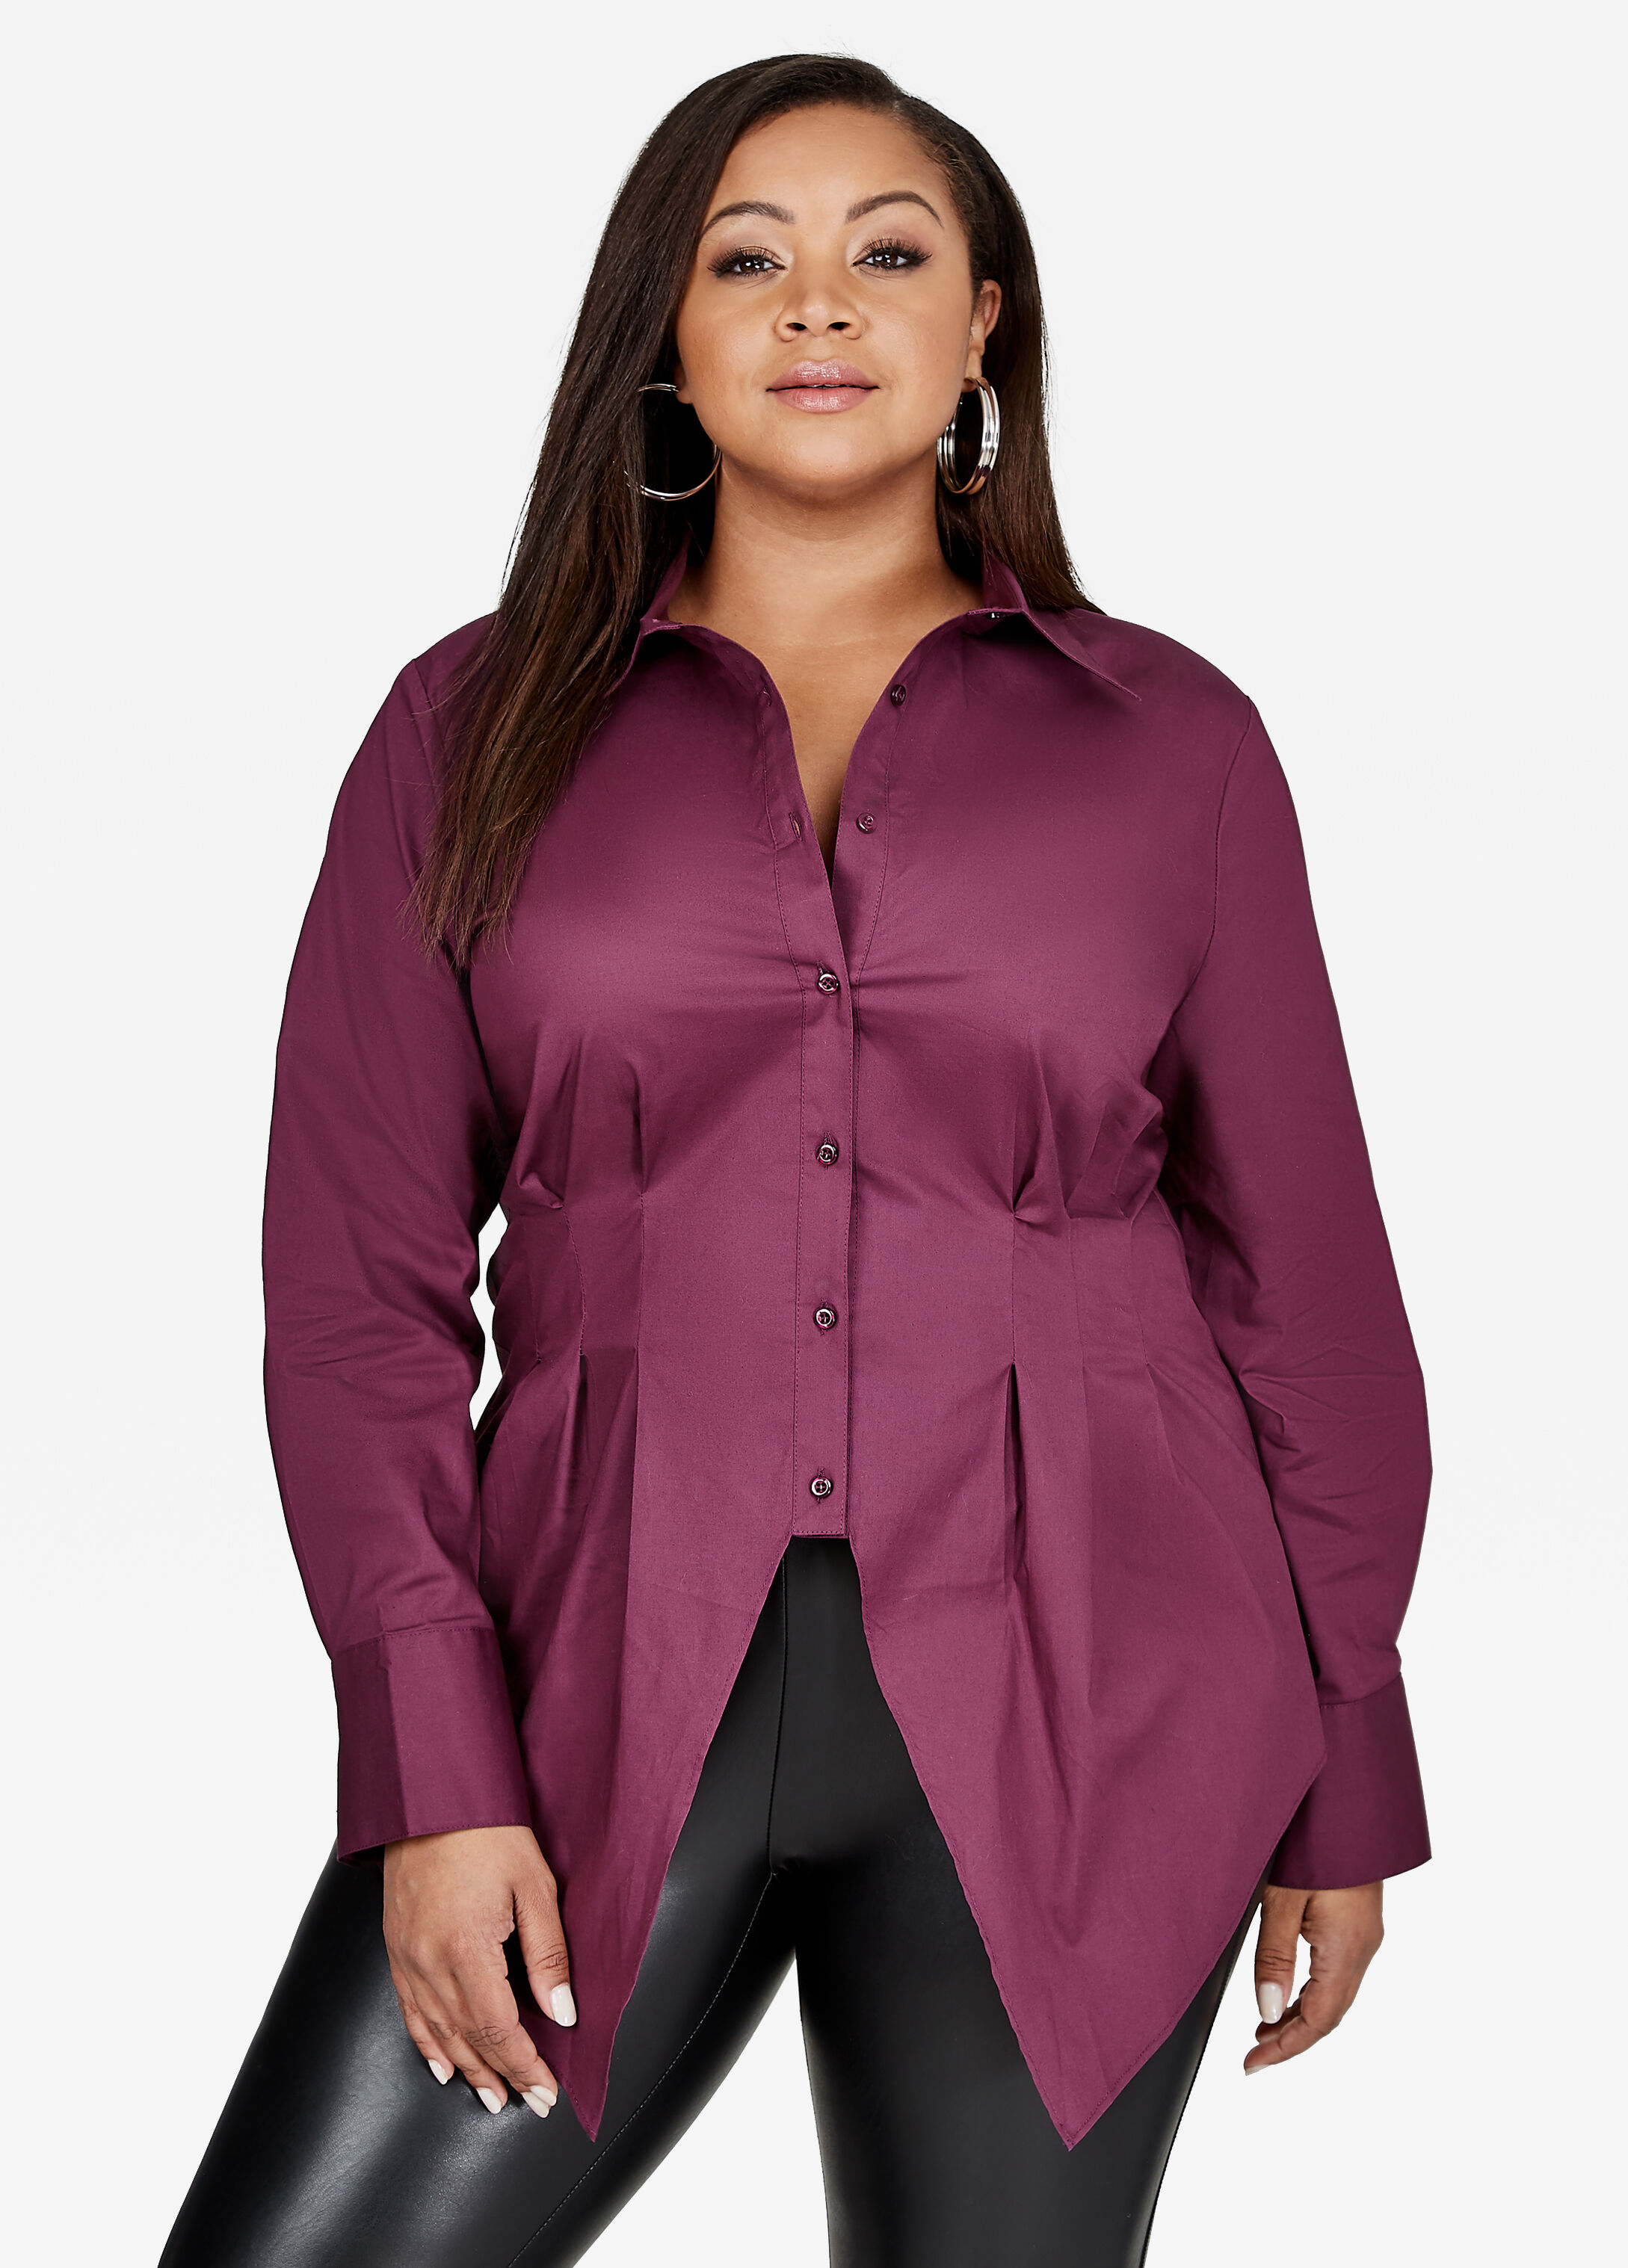 Button Up Dress Shirt Italian Plum - Clearance